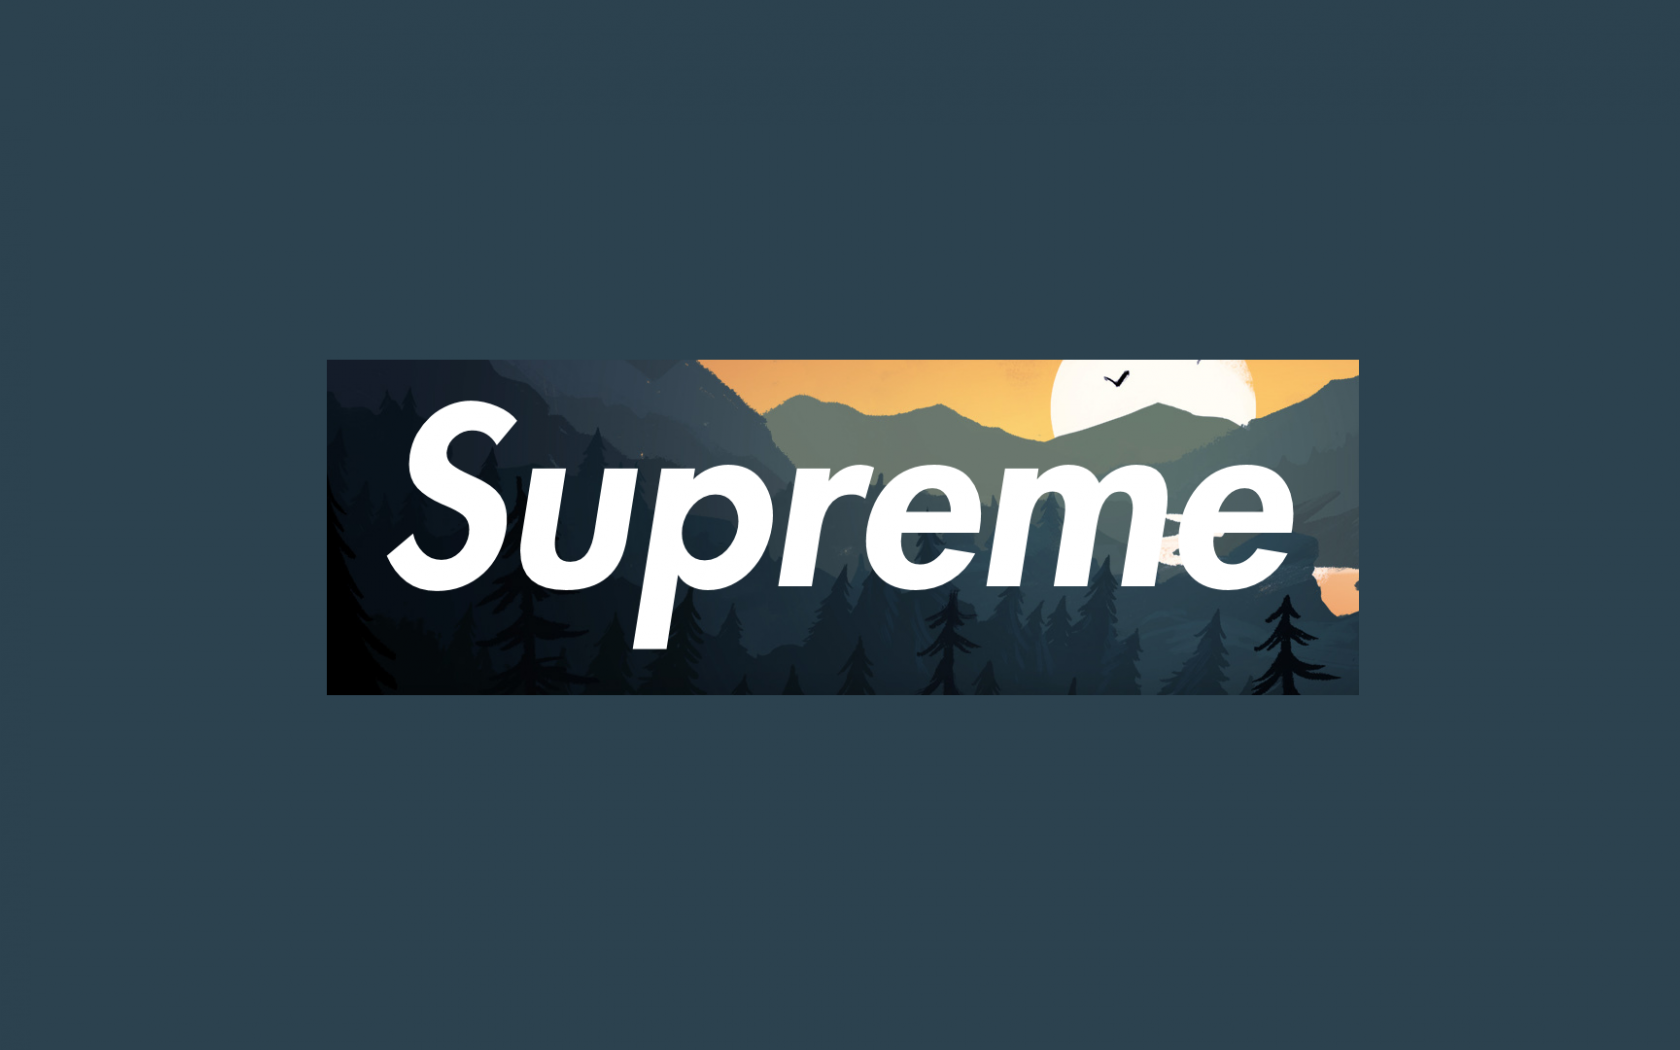 Free download Supreme Full HD Wallpapers Download for Desktop PC 1920x1080 for your Desktop ...